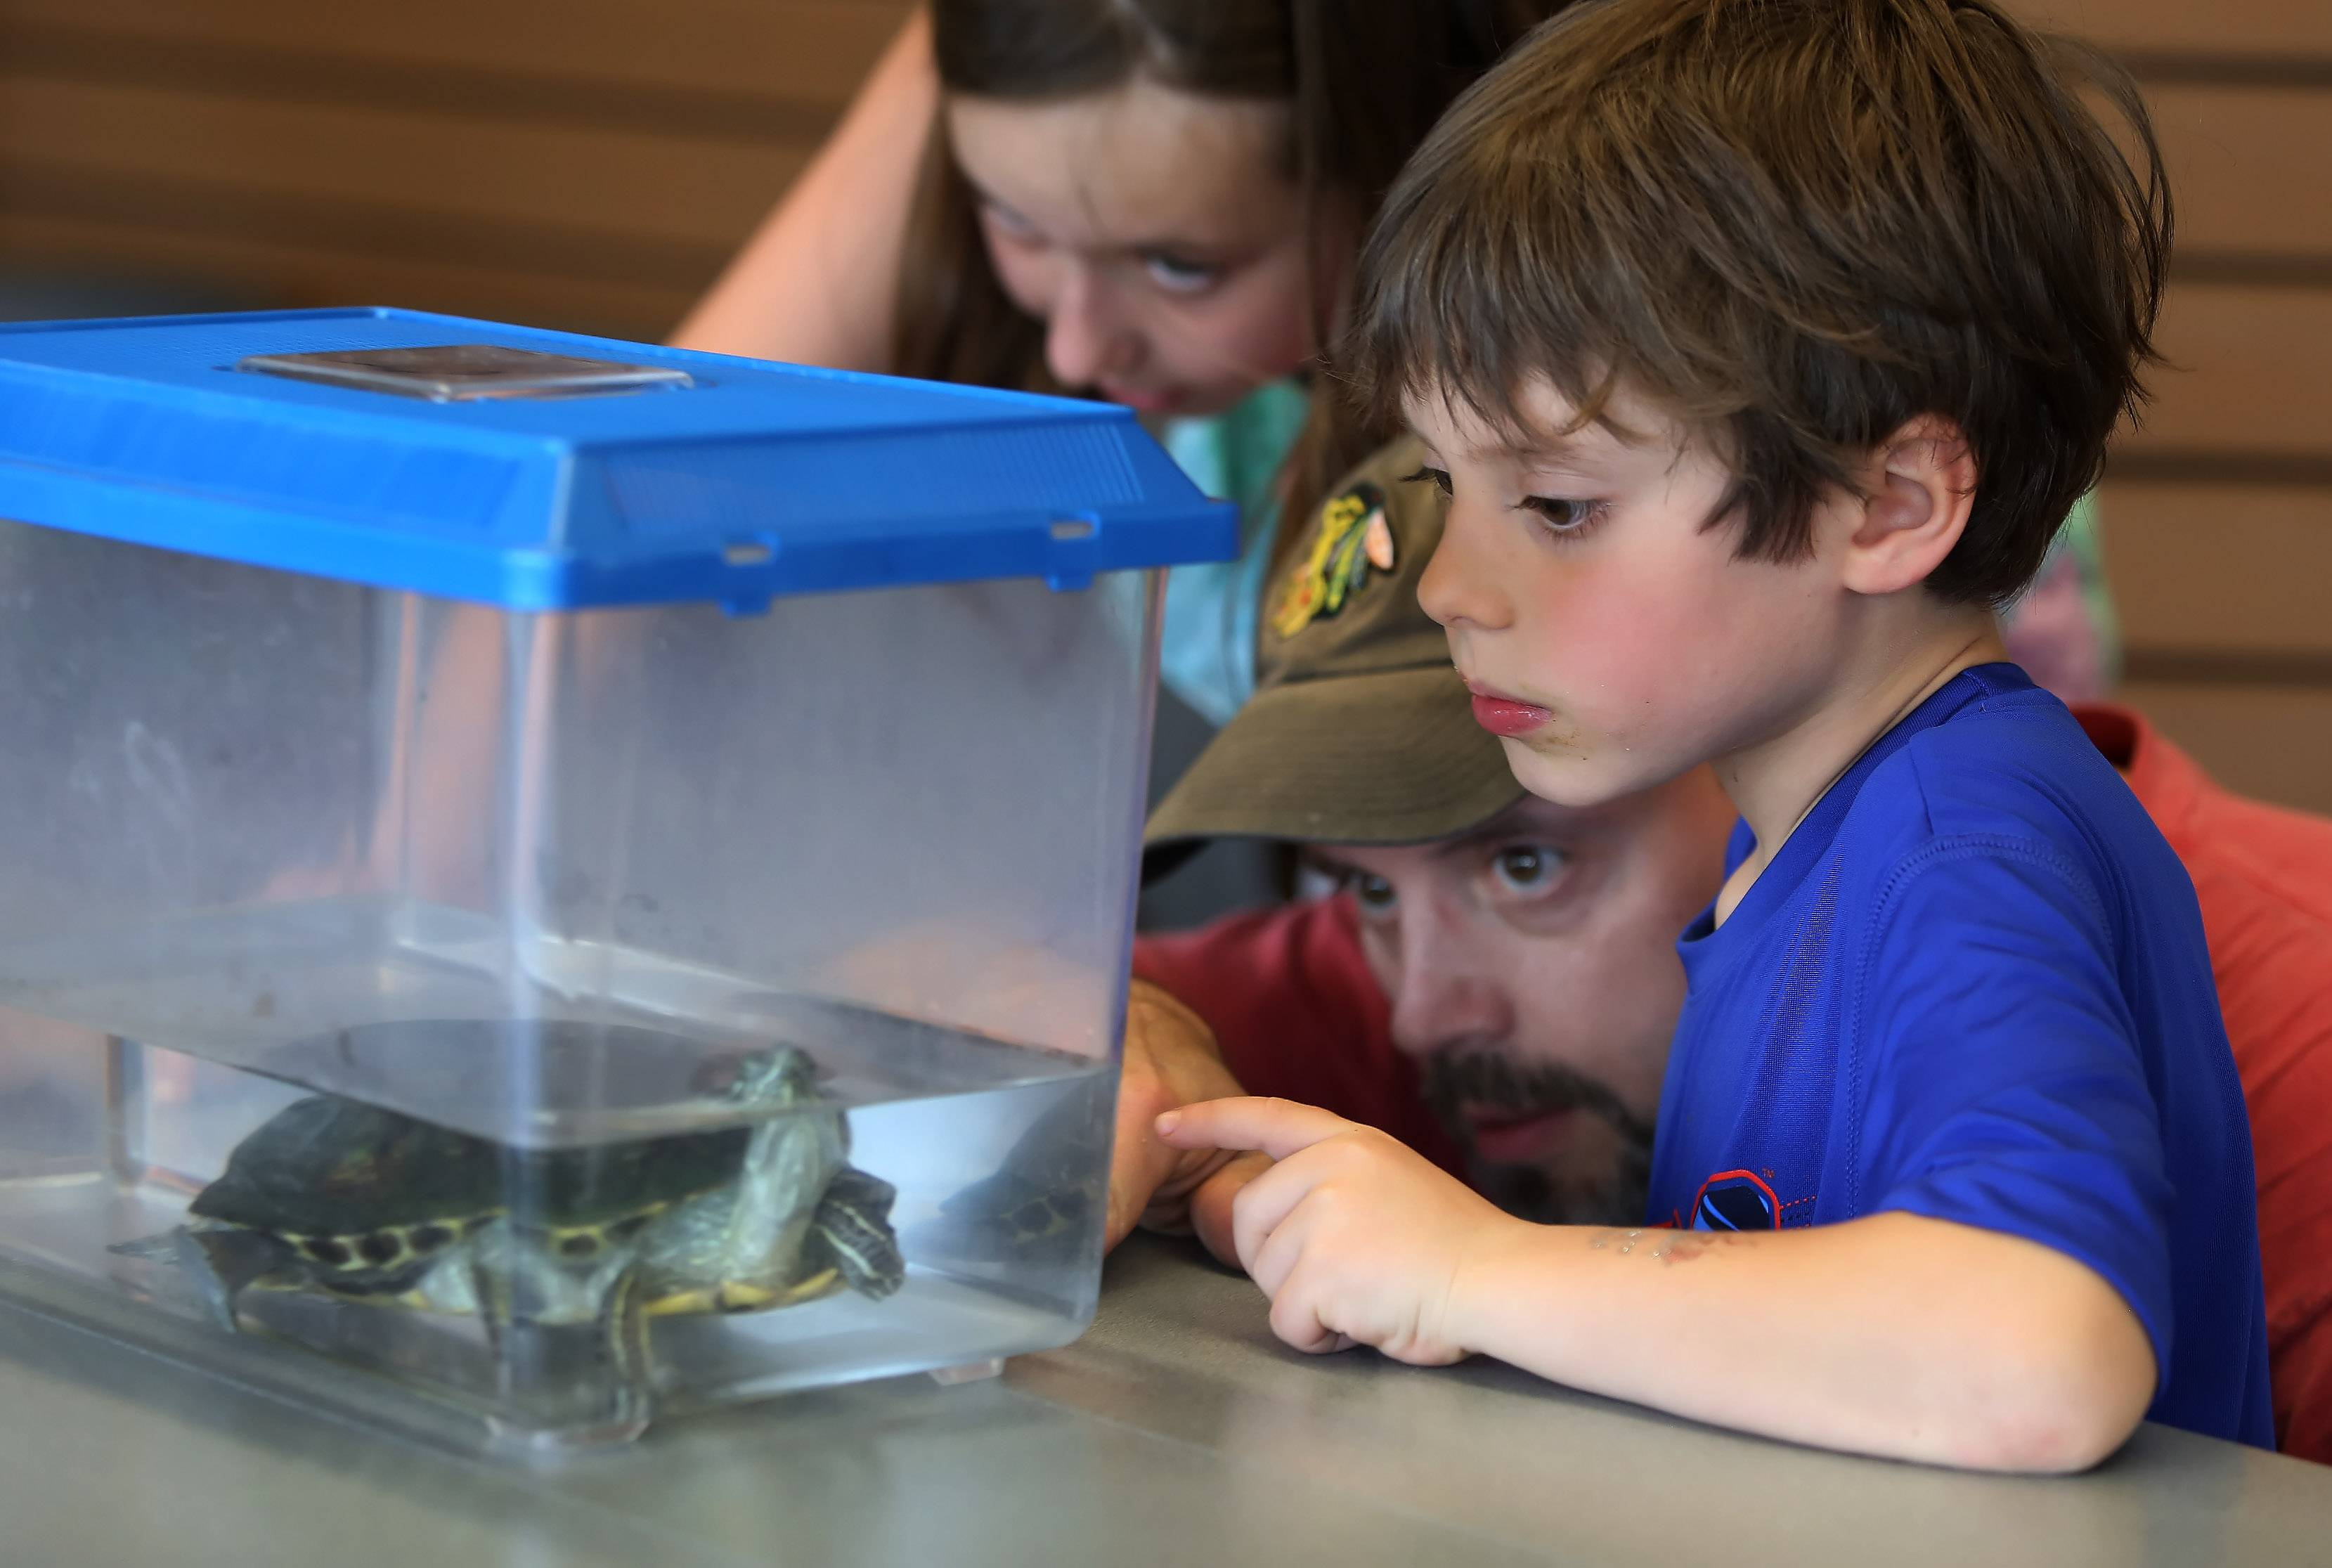 Five-year-old Nathan Mroczek, of Lincolnshire, looks at a red-eared slider turtle with is father, Tony and sister Leia, 10, during the Greet Education Animals program Sunday by the Lake County Forest Preserve District at Ryerson Conversation Area near Riverwoods. The event kicked off a week of programs celebrating Earth Day.